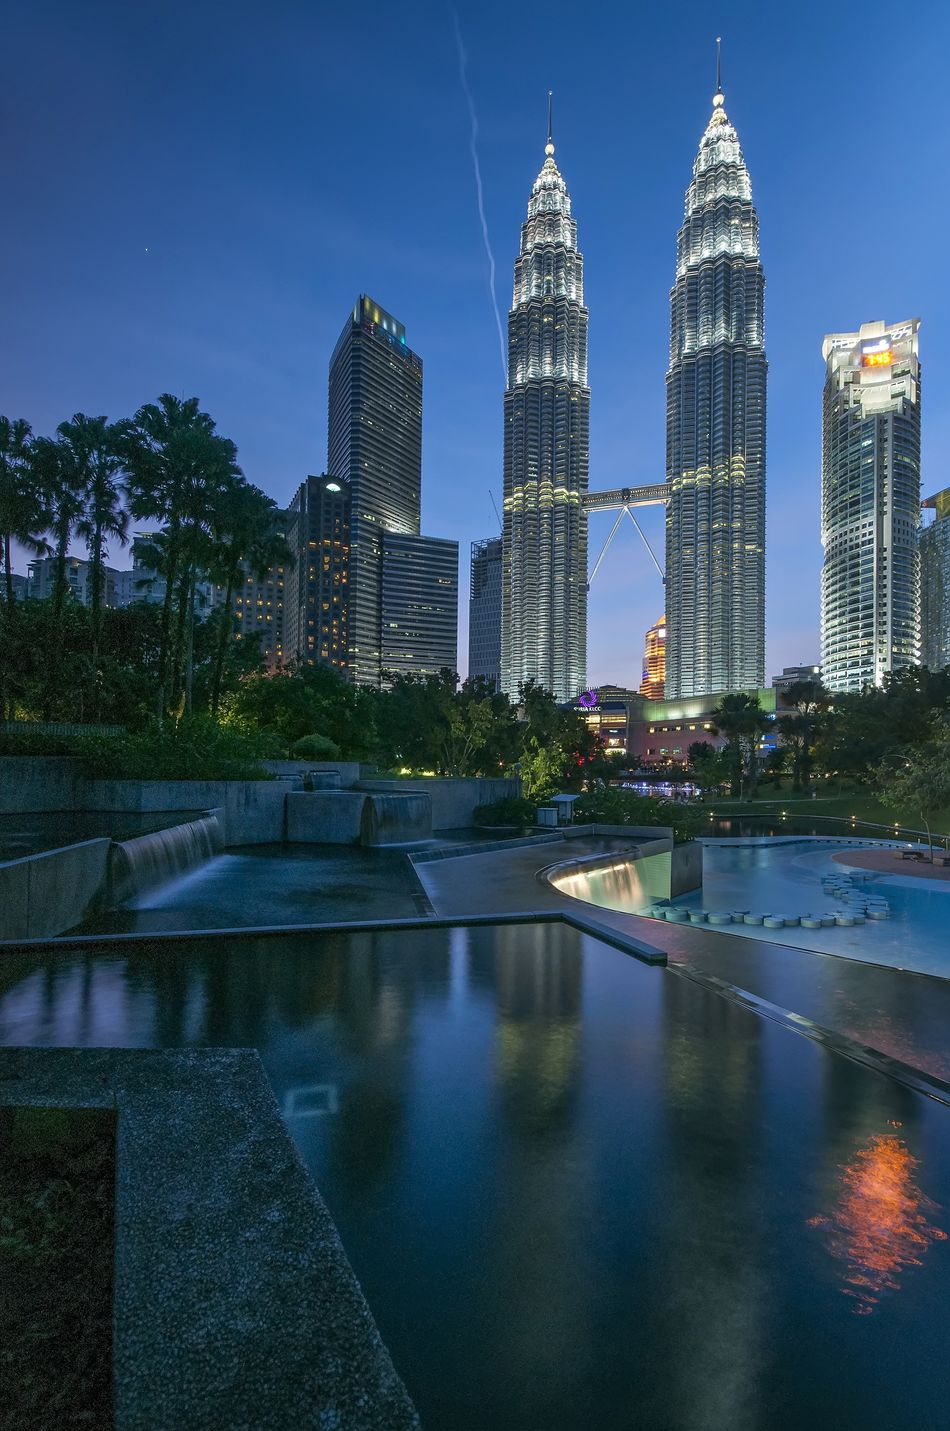 Architecture Asian  Blue Sky Buildings City Cityscape Klcc KLCC Tower KLCC Twin Towers Light Malaysia Night Night View Nightphotography Outdoors Park Travel Destinations Urban Skyline